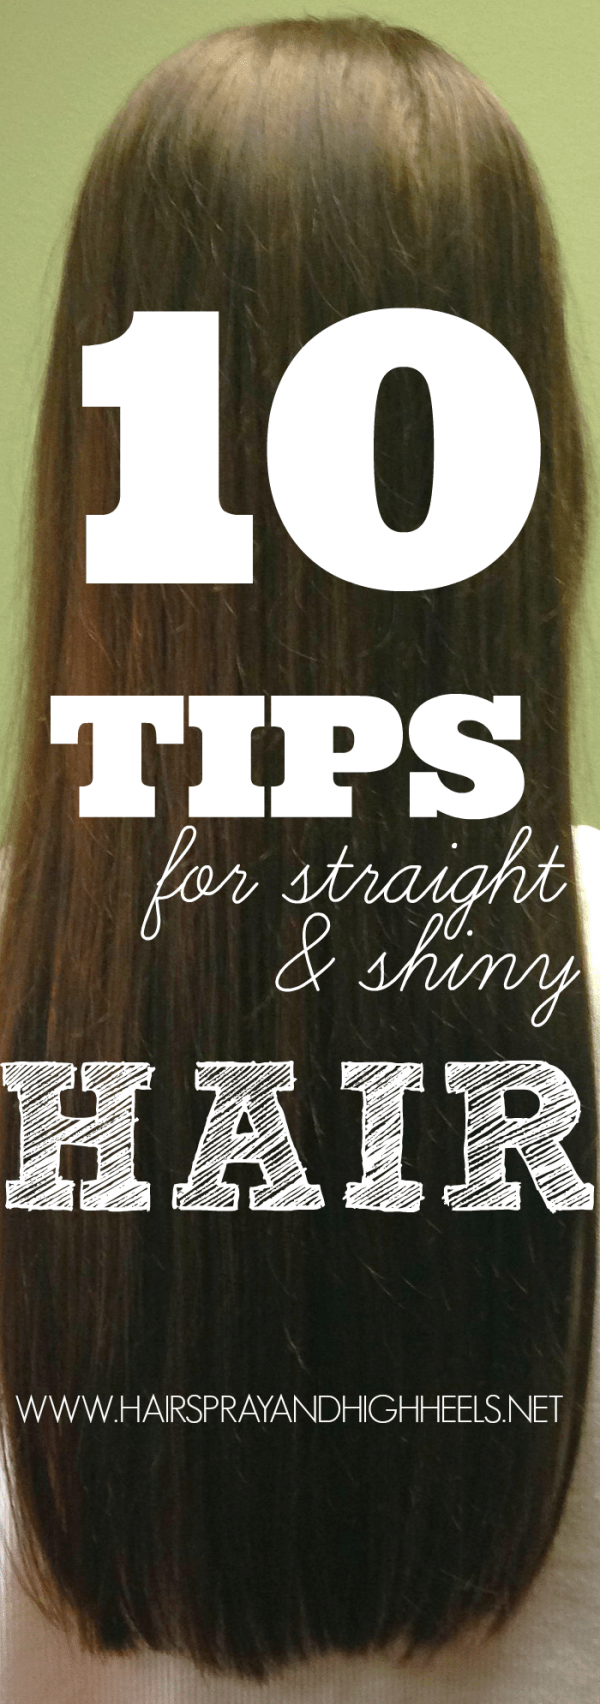 straight-and-shiny-hair-tips (1)